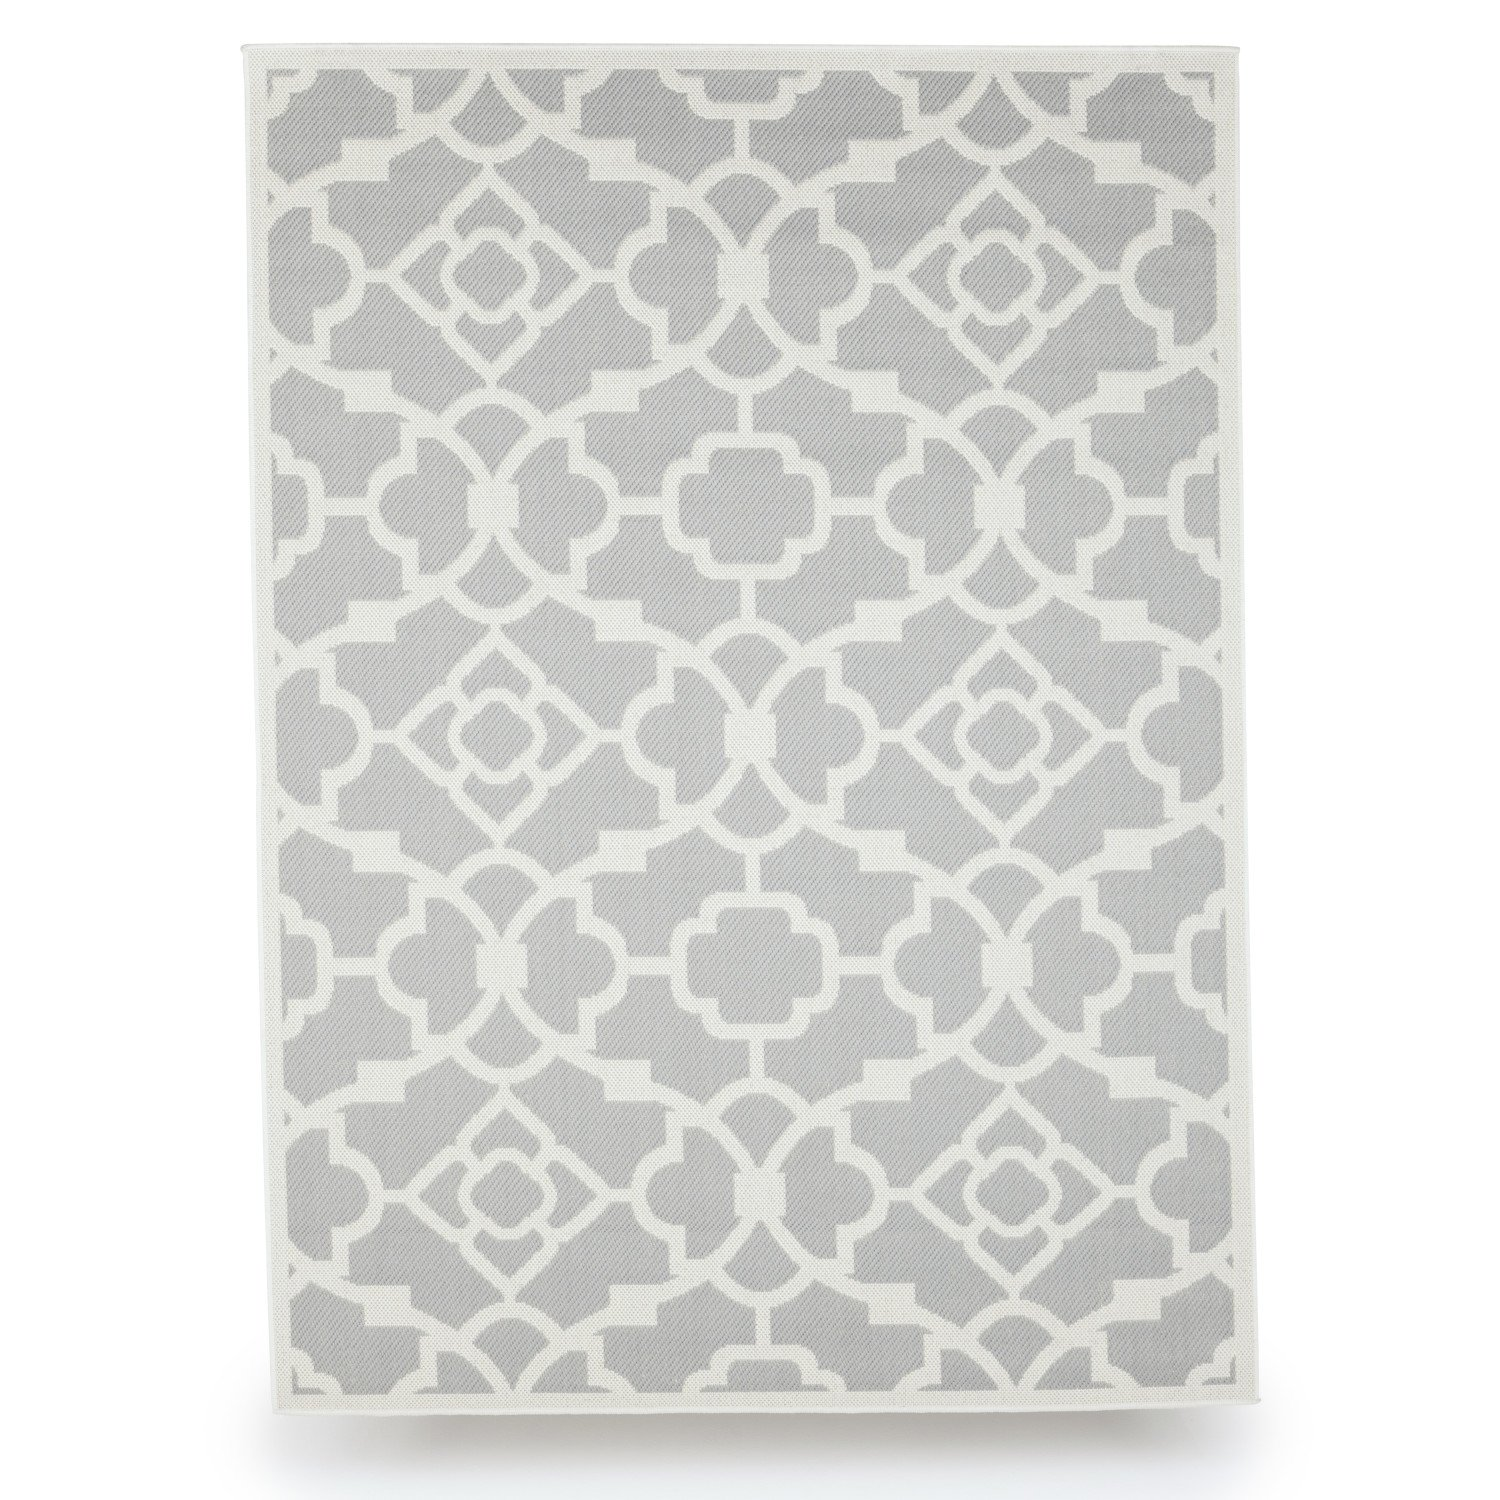 Budge Monaco Outdoor Patio Rug, RUG057GY1 (5' Long x 7' Wide, Slate Gray)